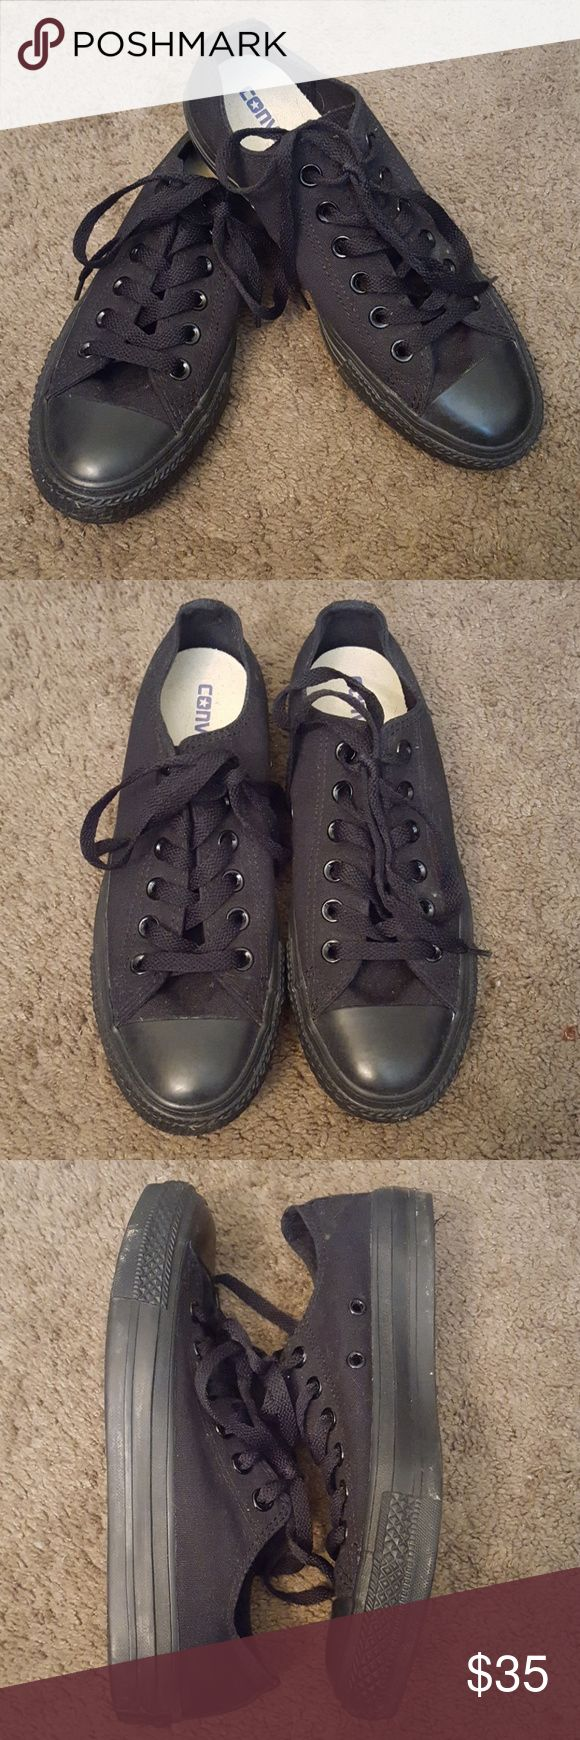 EUC Converse All Black Low Top Shoes Size 7 EUC Converse All Star All Black Low Top Shoes Size 7. EUC condition, a little dusty from being in my closet. Men's size 5, Women's size 7. Check out my other Converses for sale! Converse Shoes Sneakers